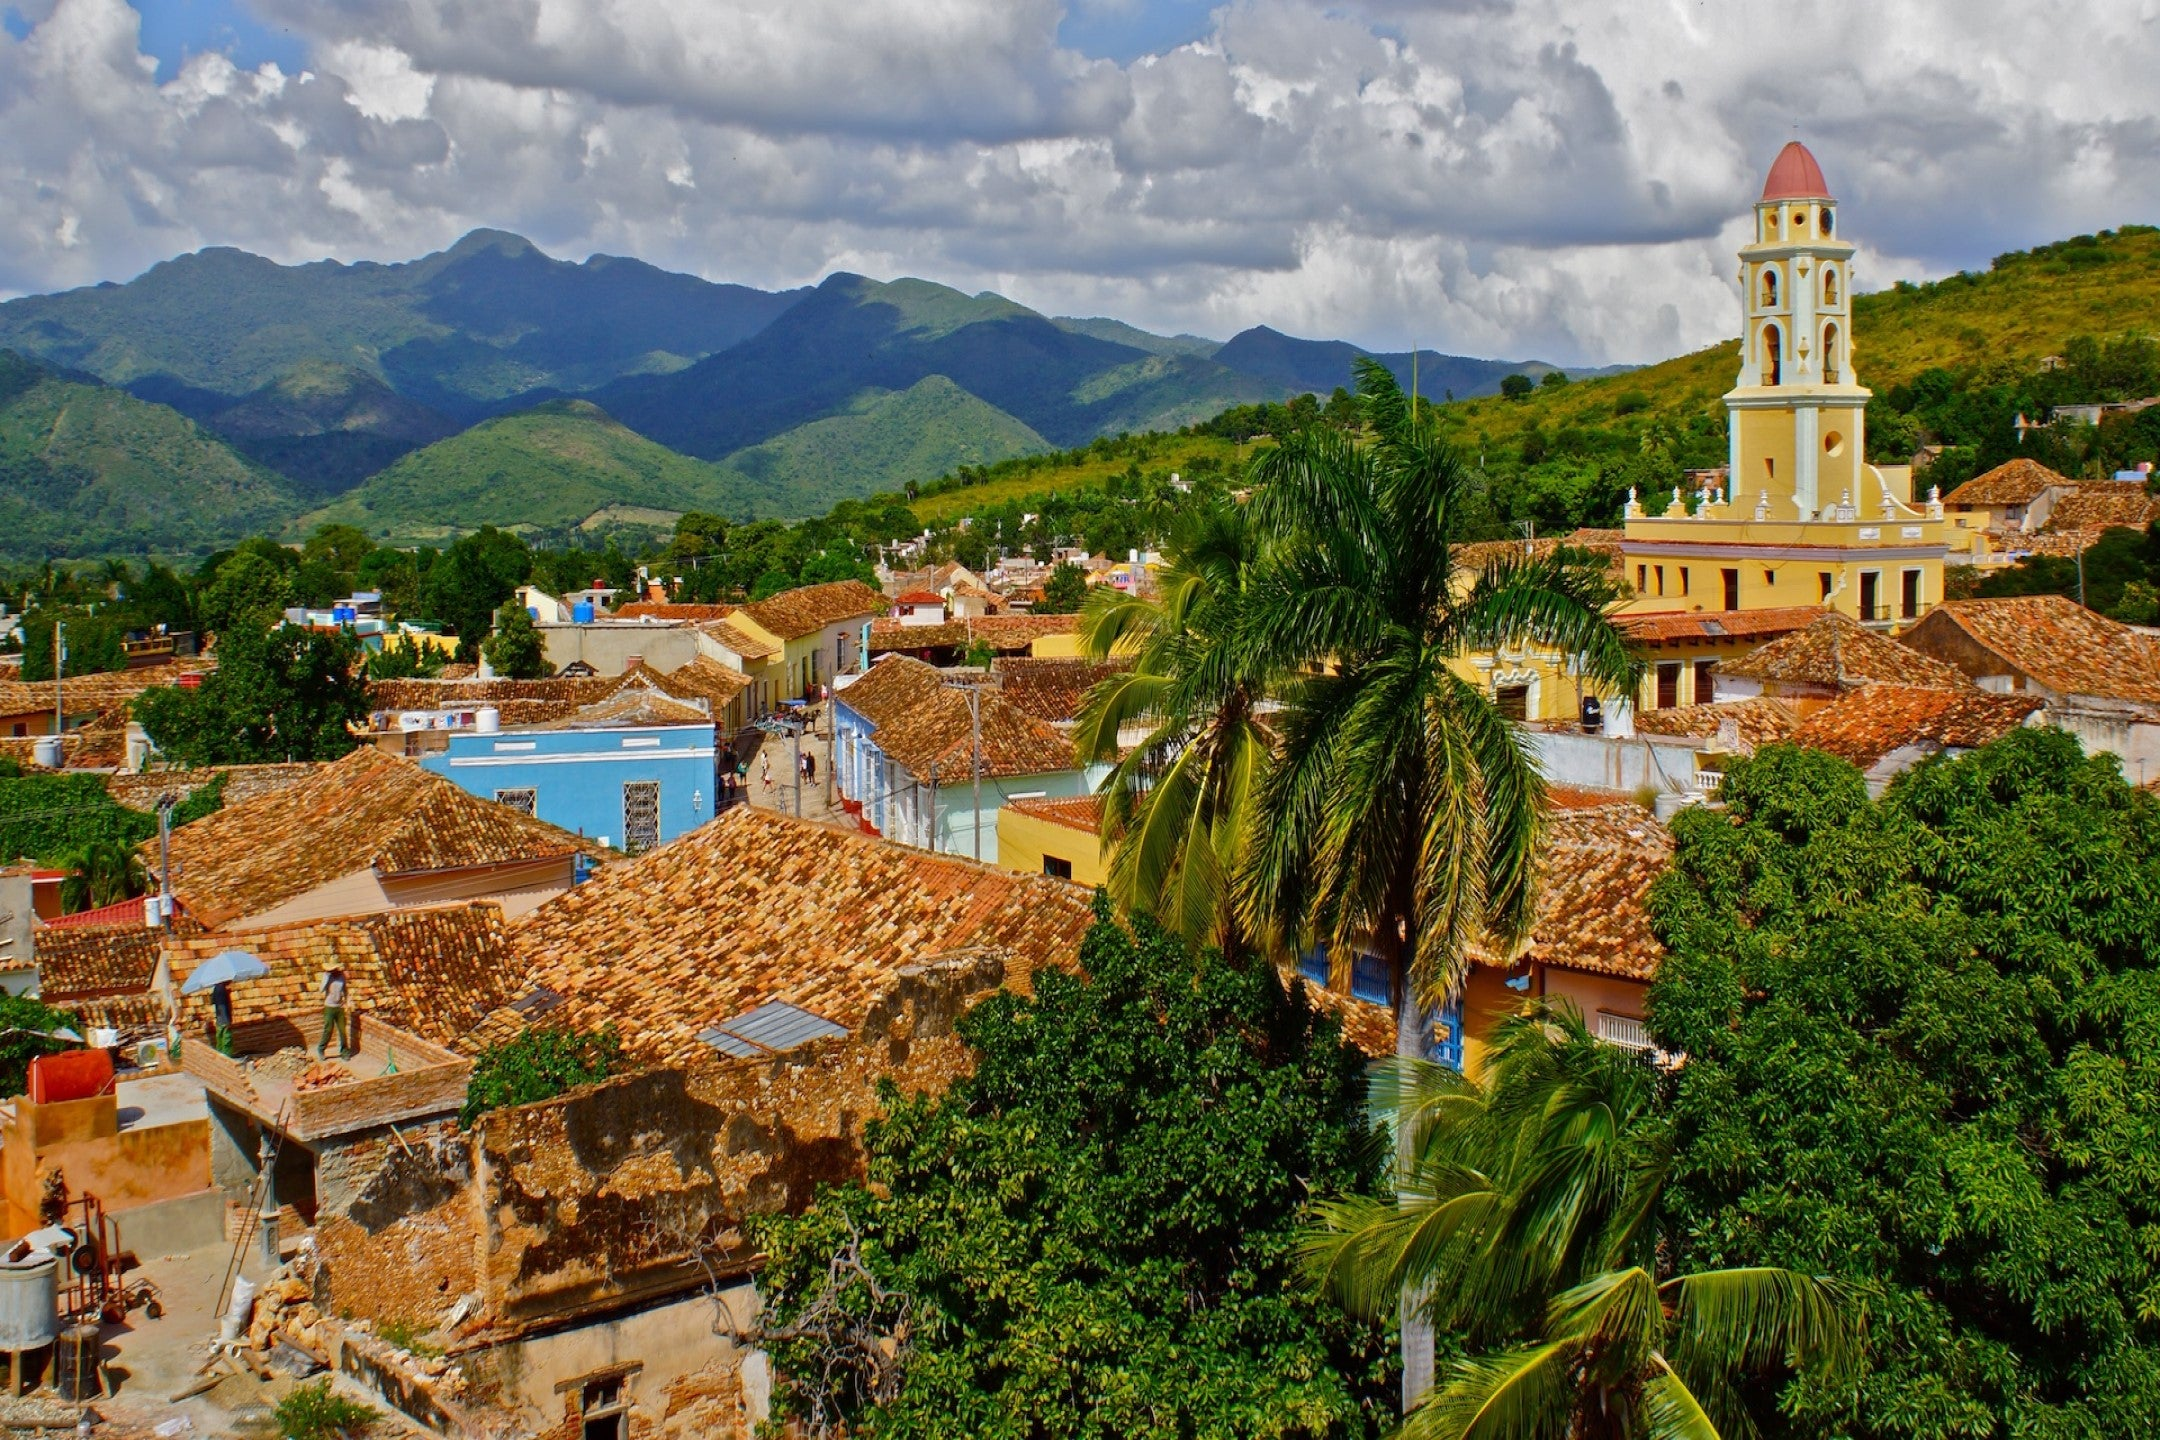 The town of Trinidad in the south of Cuba.